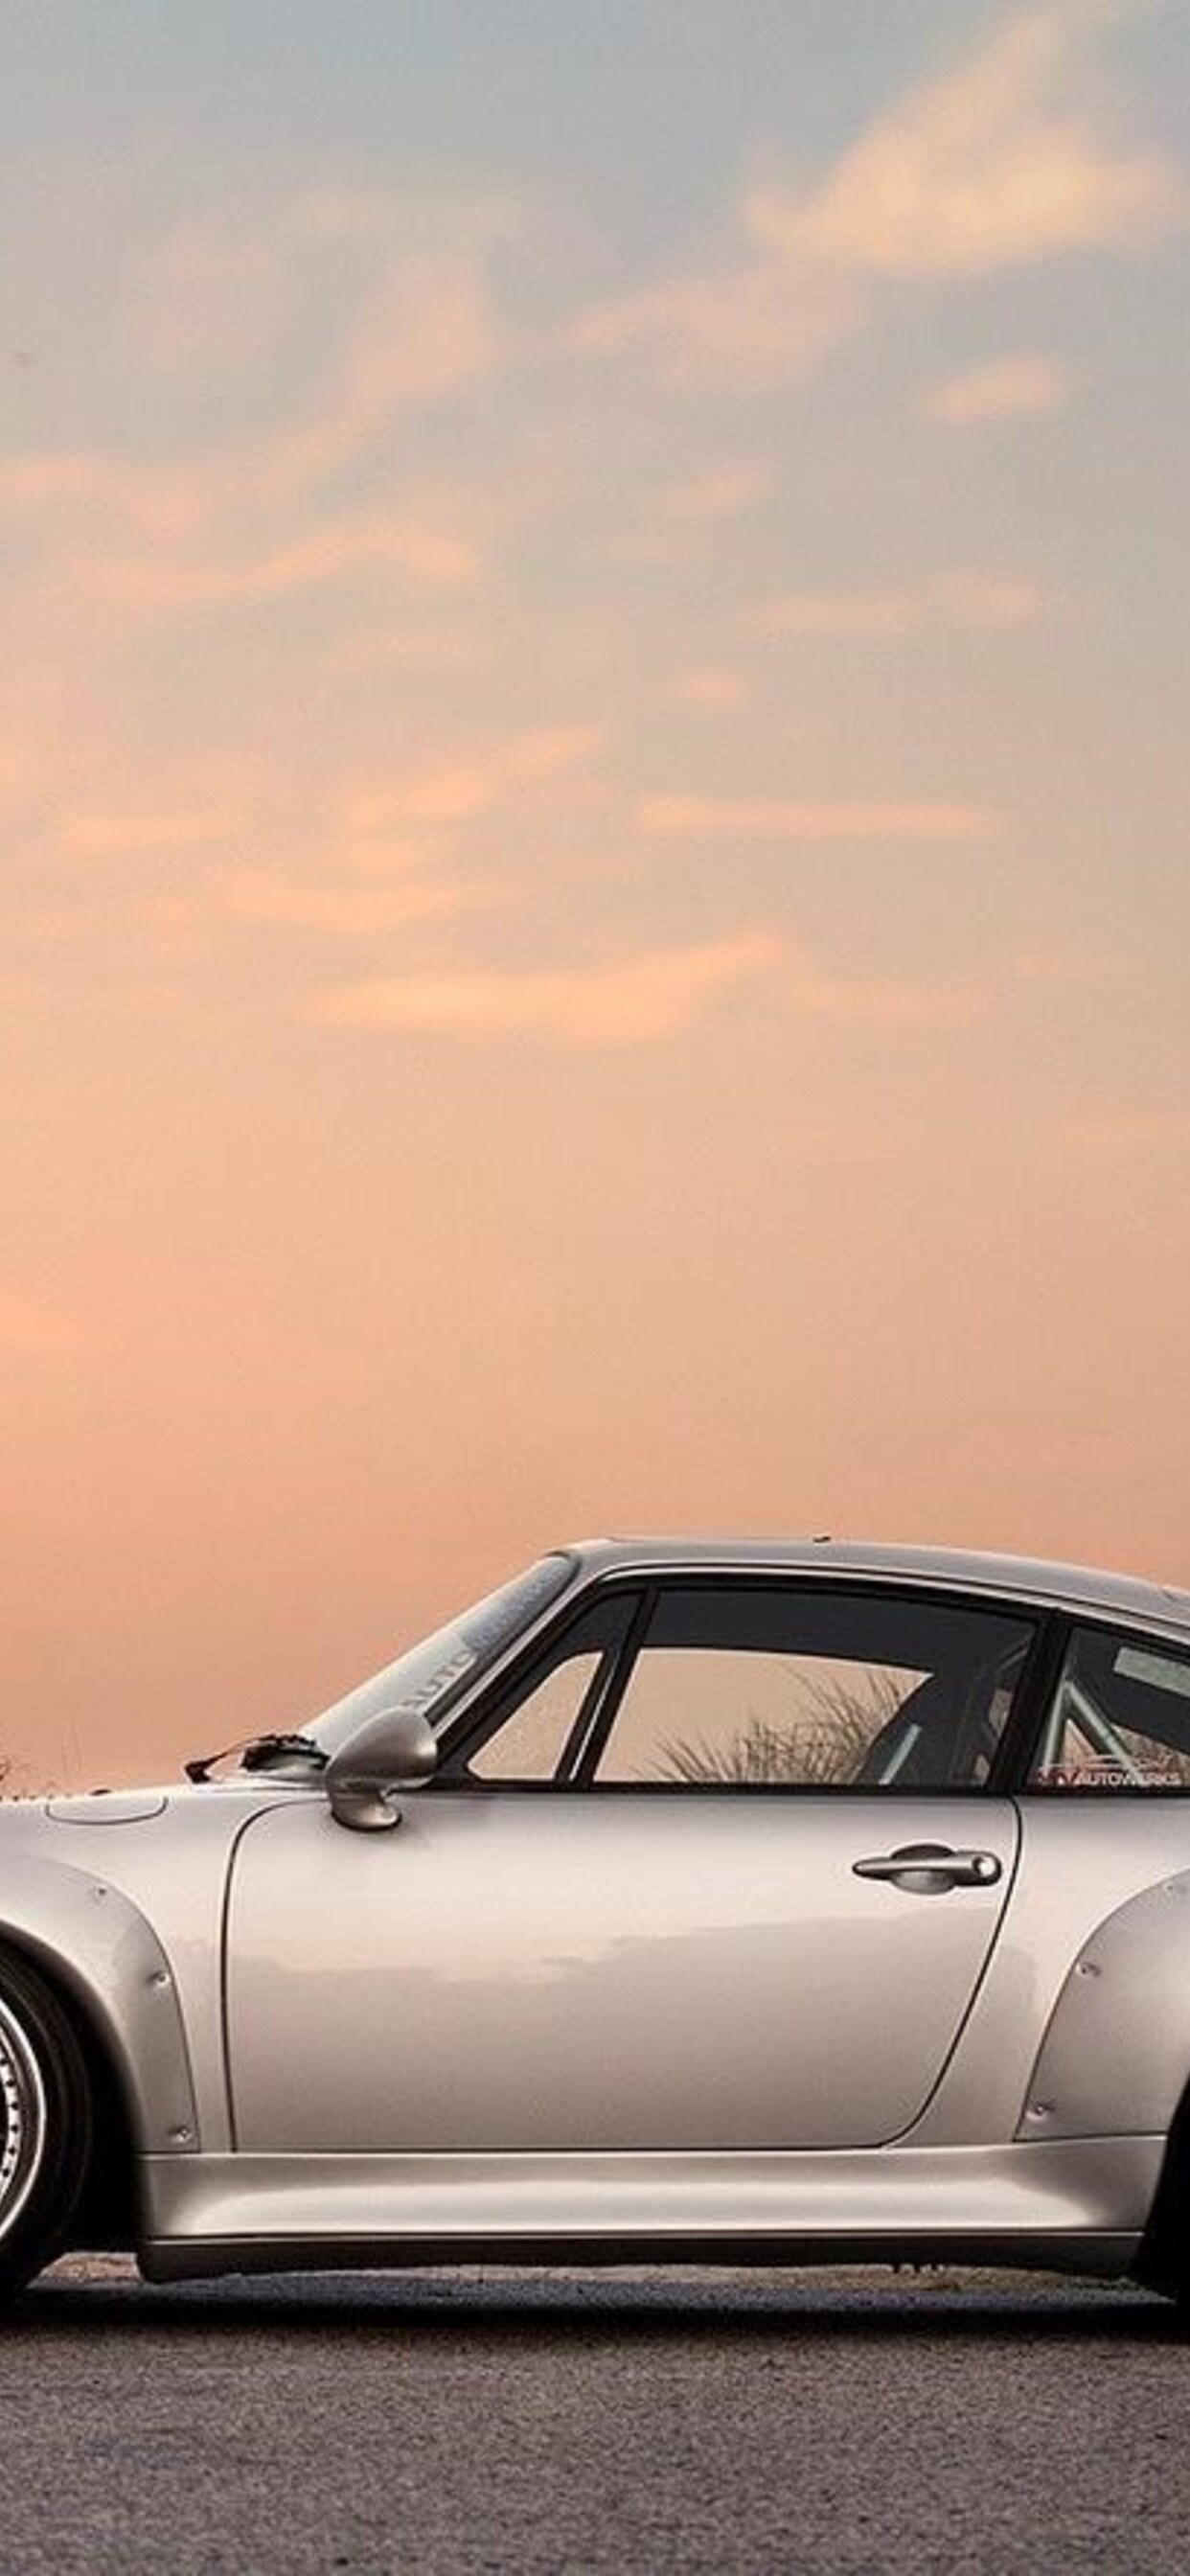 1242x2688 Porsche 911 Car Iphone Xs Max Hd 4k Wallpapers Images Backgrounds Photos And Pictures